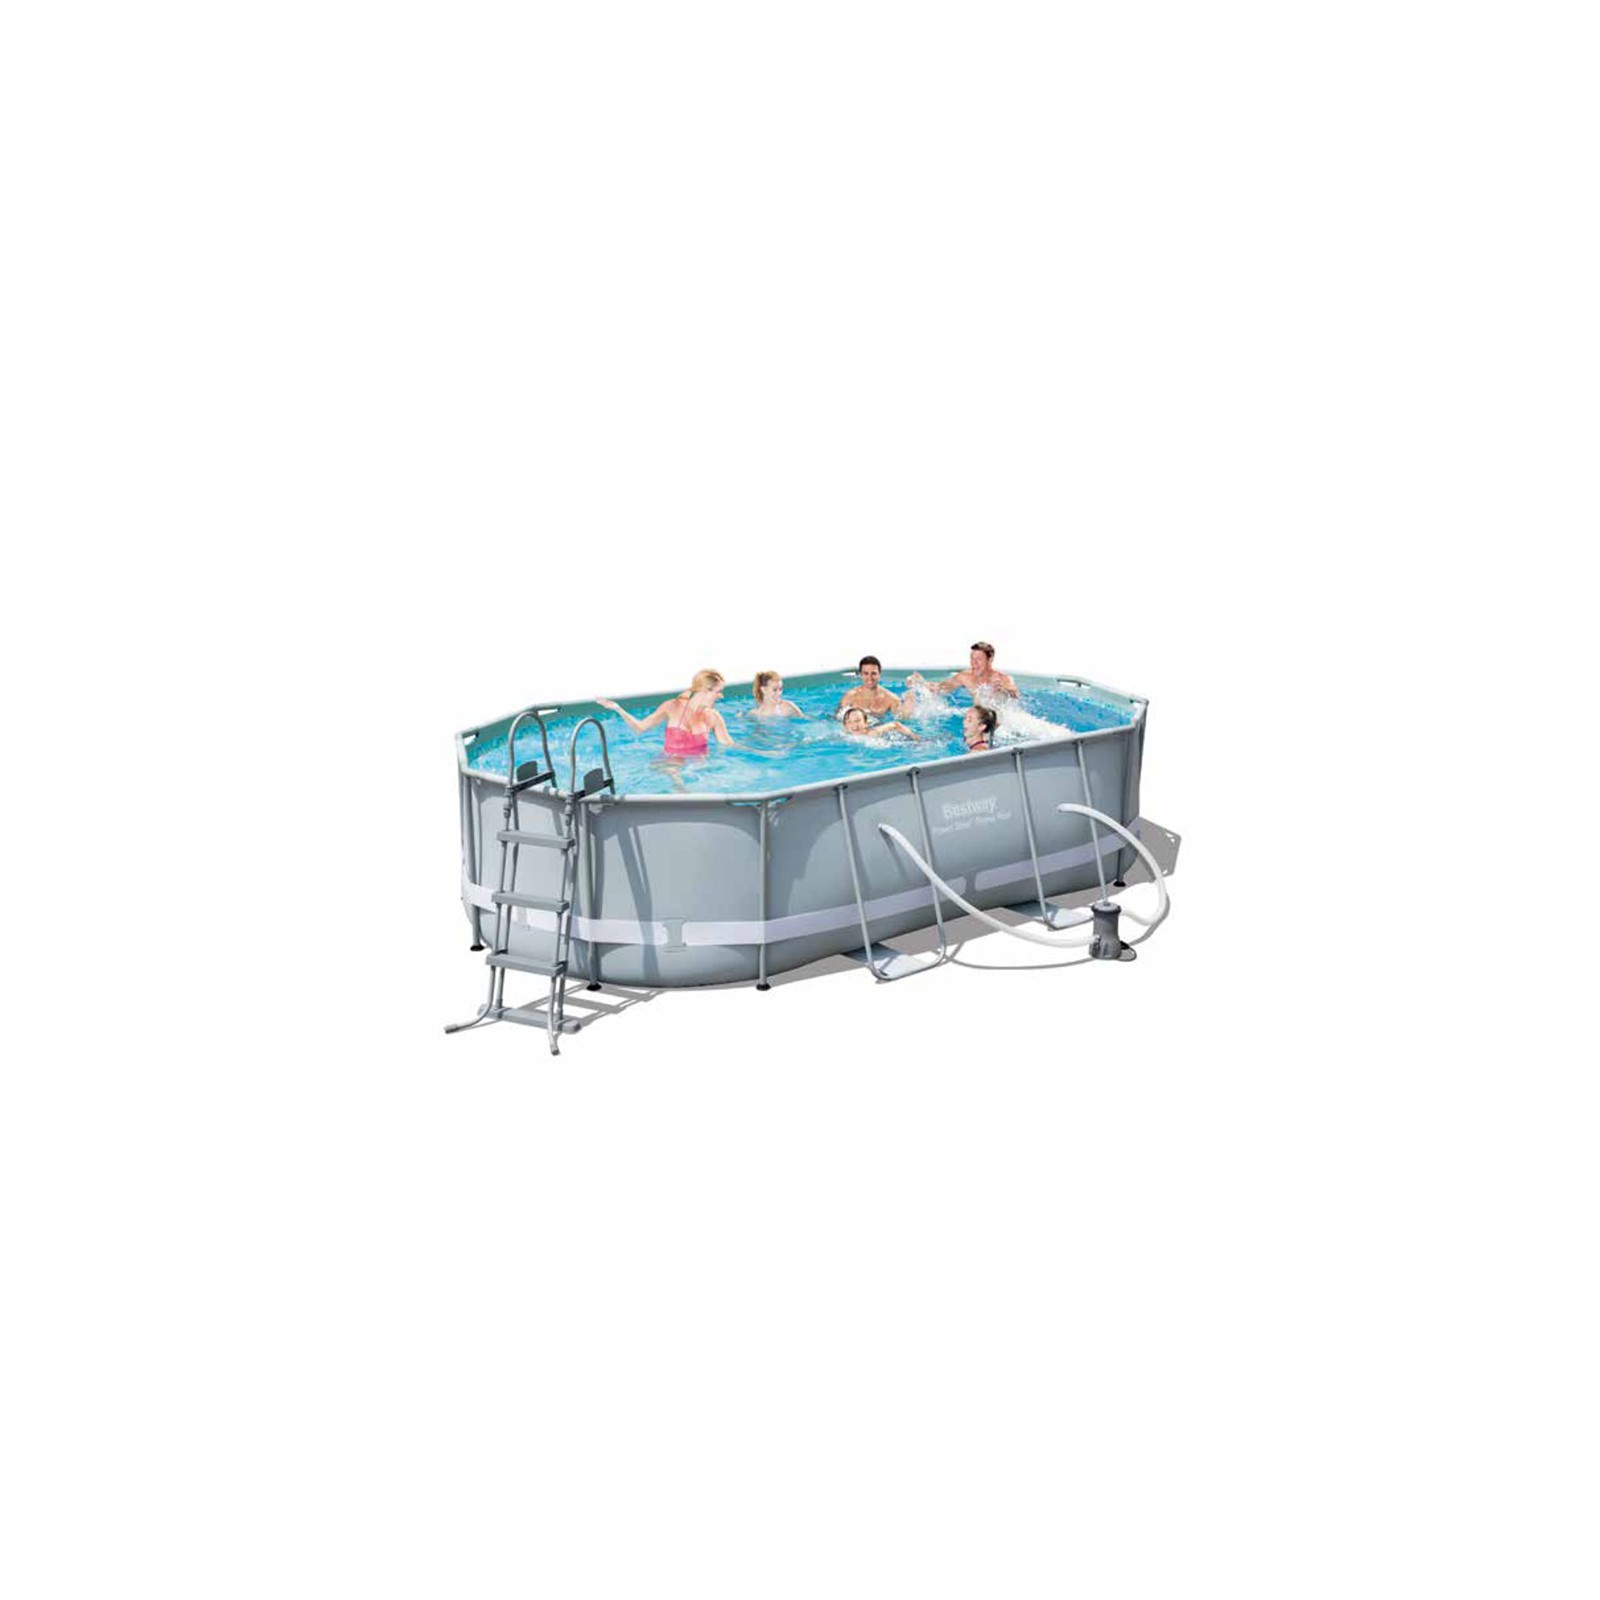 Acquista online piscina bestway ovale fuori terra cm for Piscine online